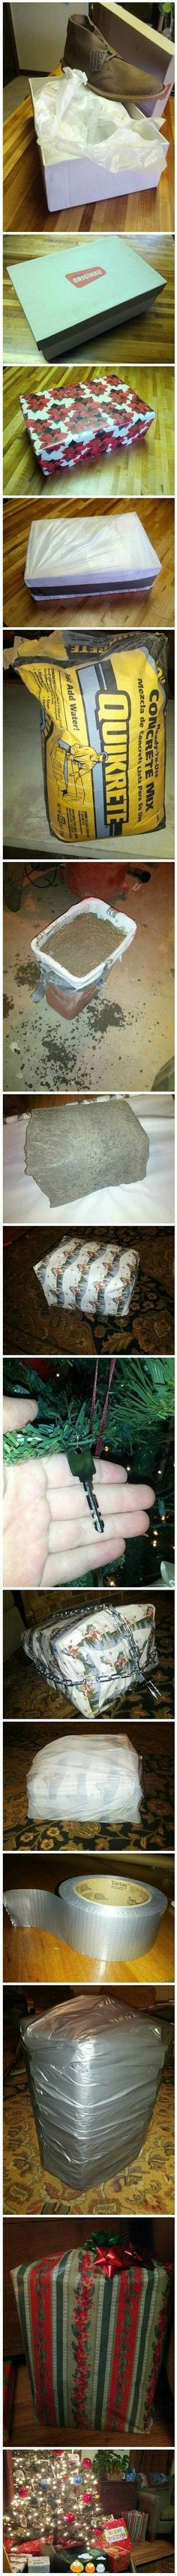 Totally funny way to wrap a gift!